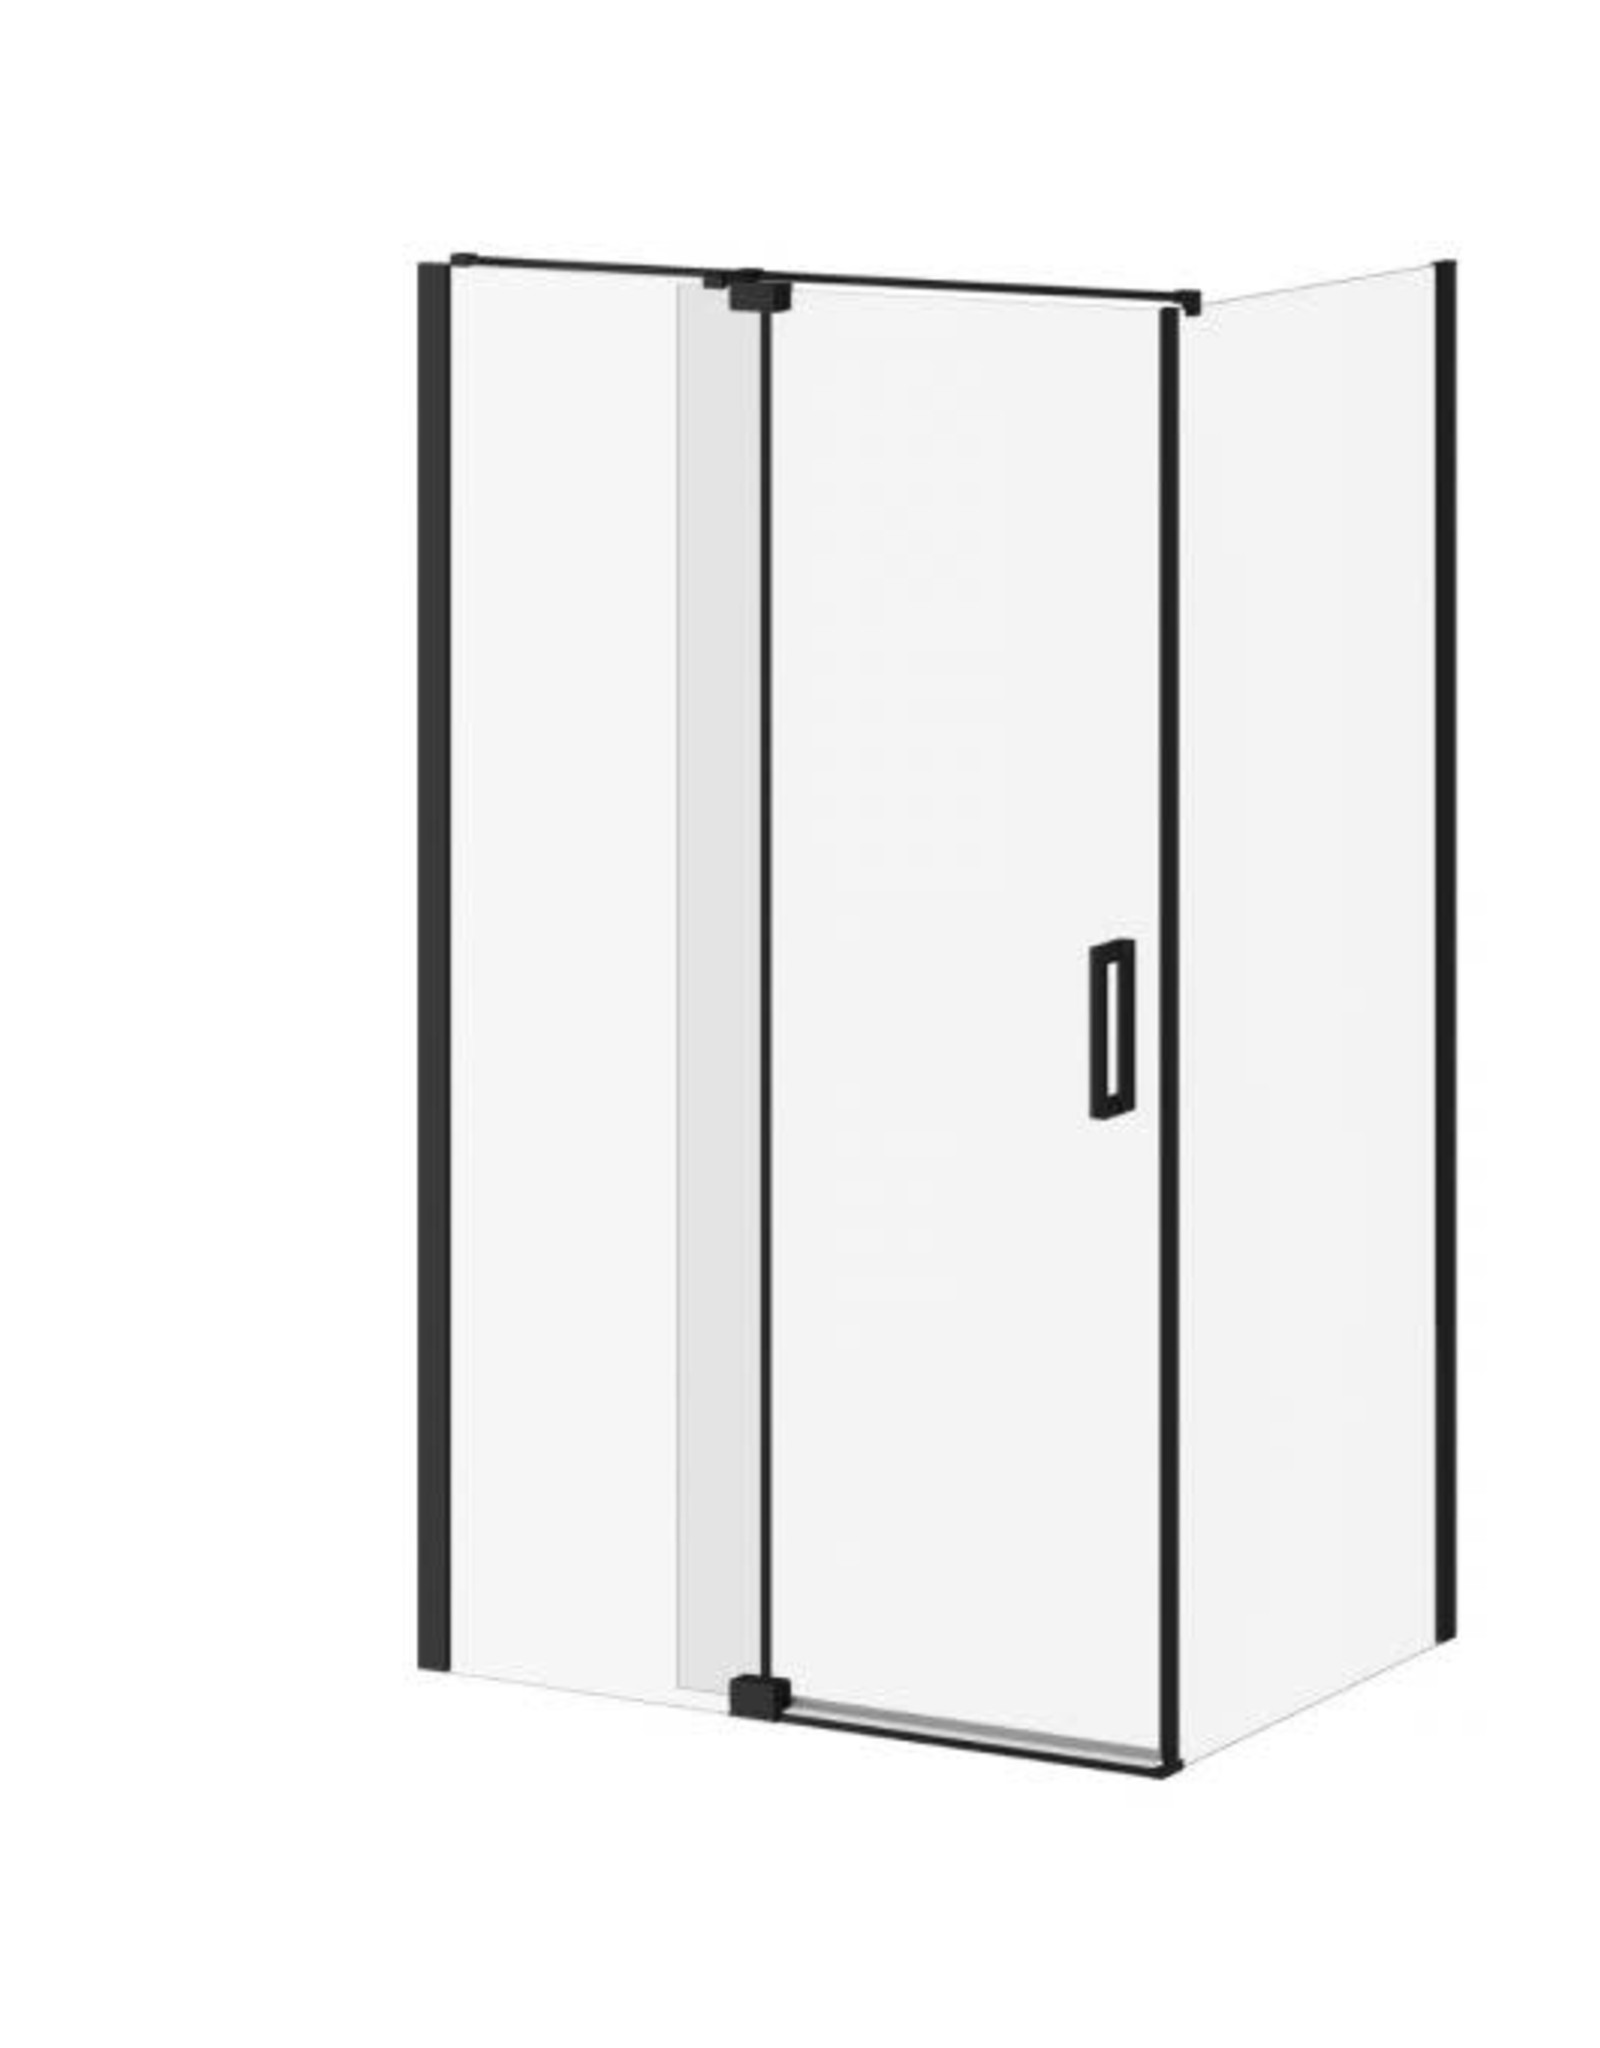 "Kalia Distink Pivot Shower Door 48"" x 36"" Corner Install- Matte Black"